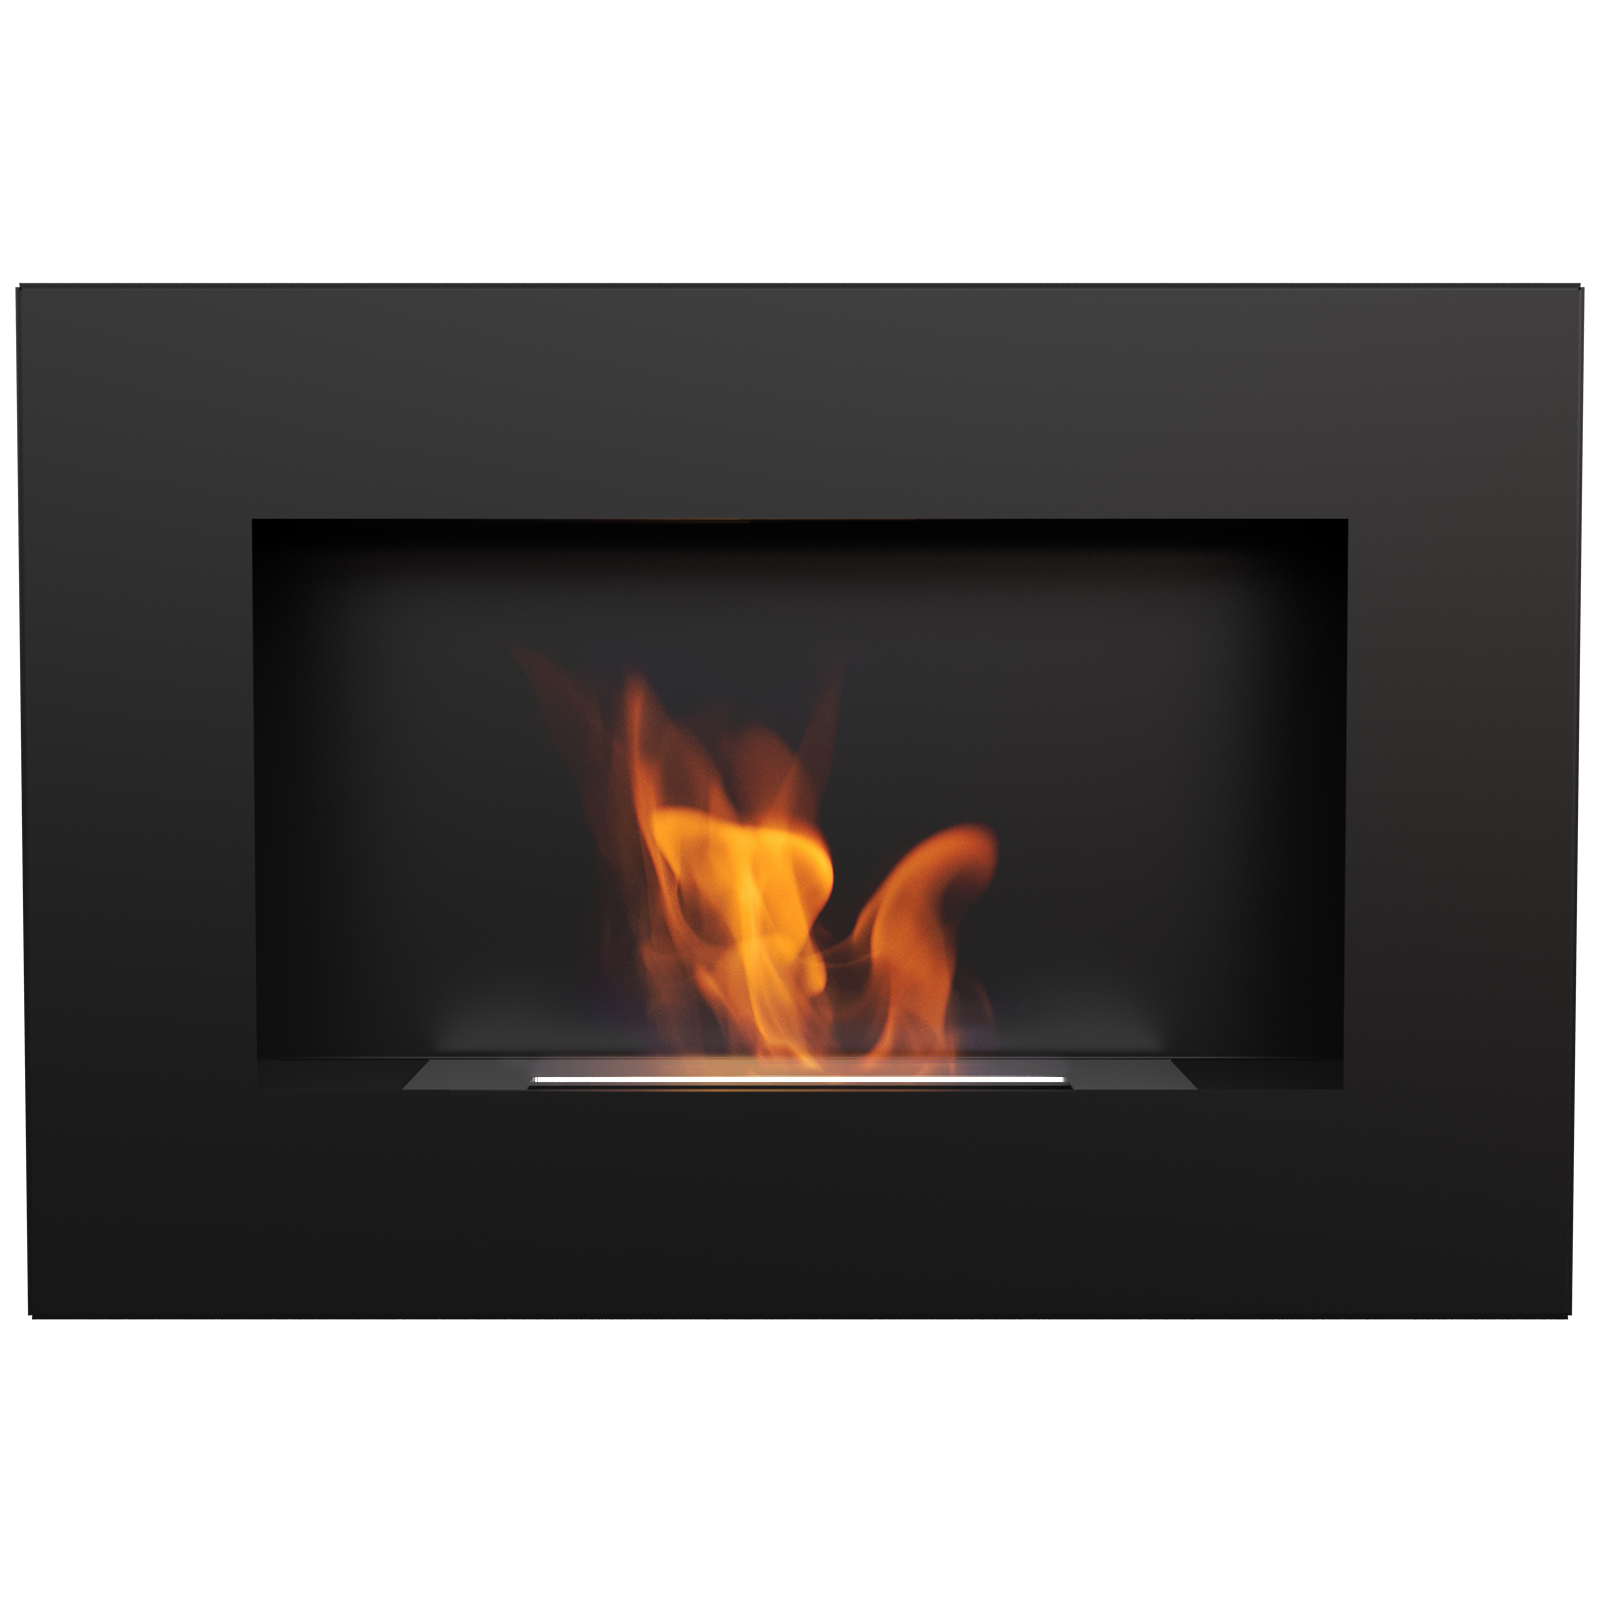 big in whi burners fireplace bio ethanol blog new small stock and models fireplaces units floor ii now of cube tabletop p our